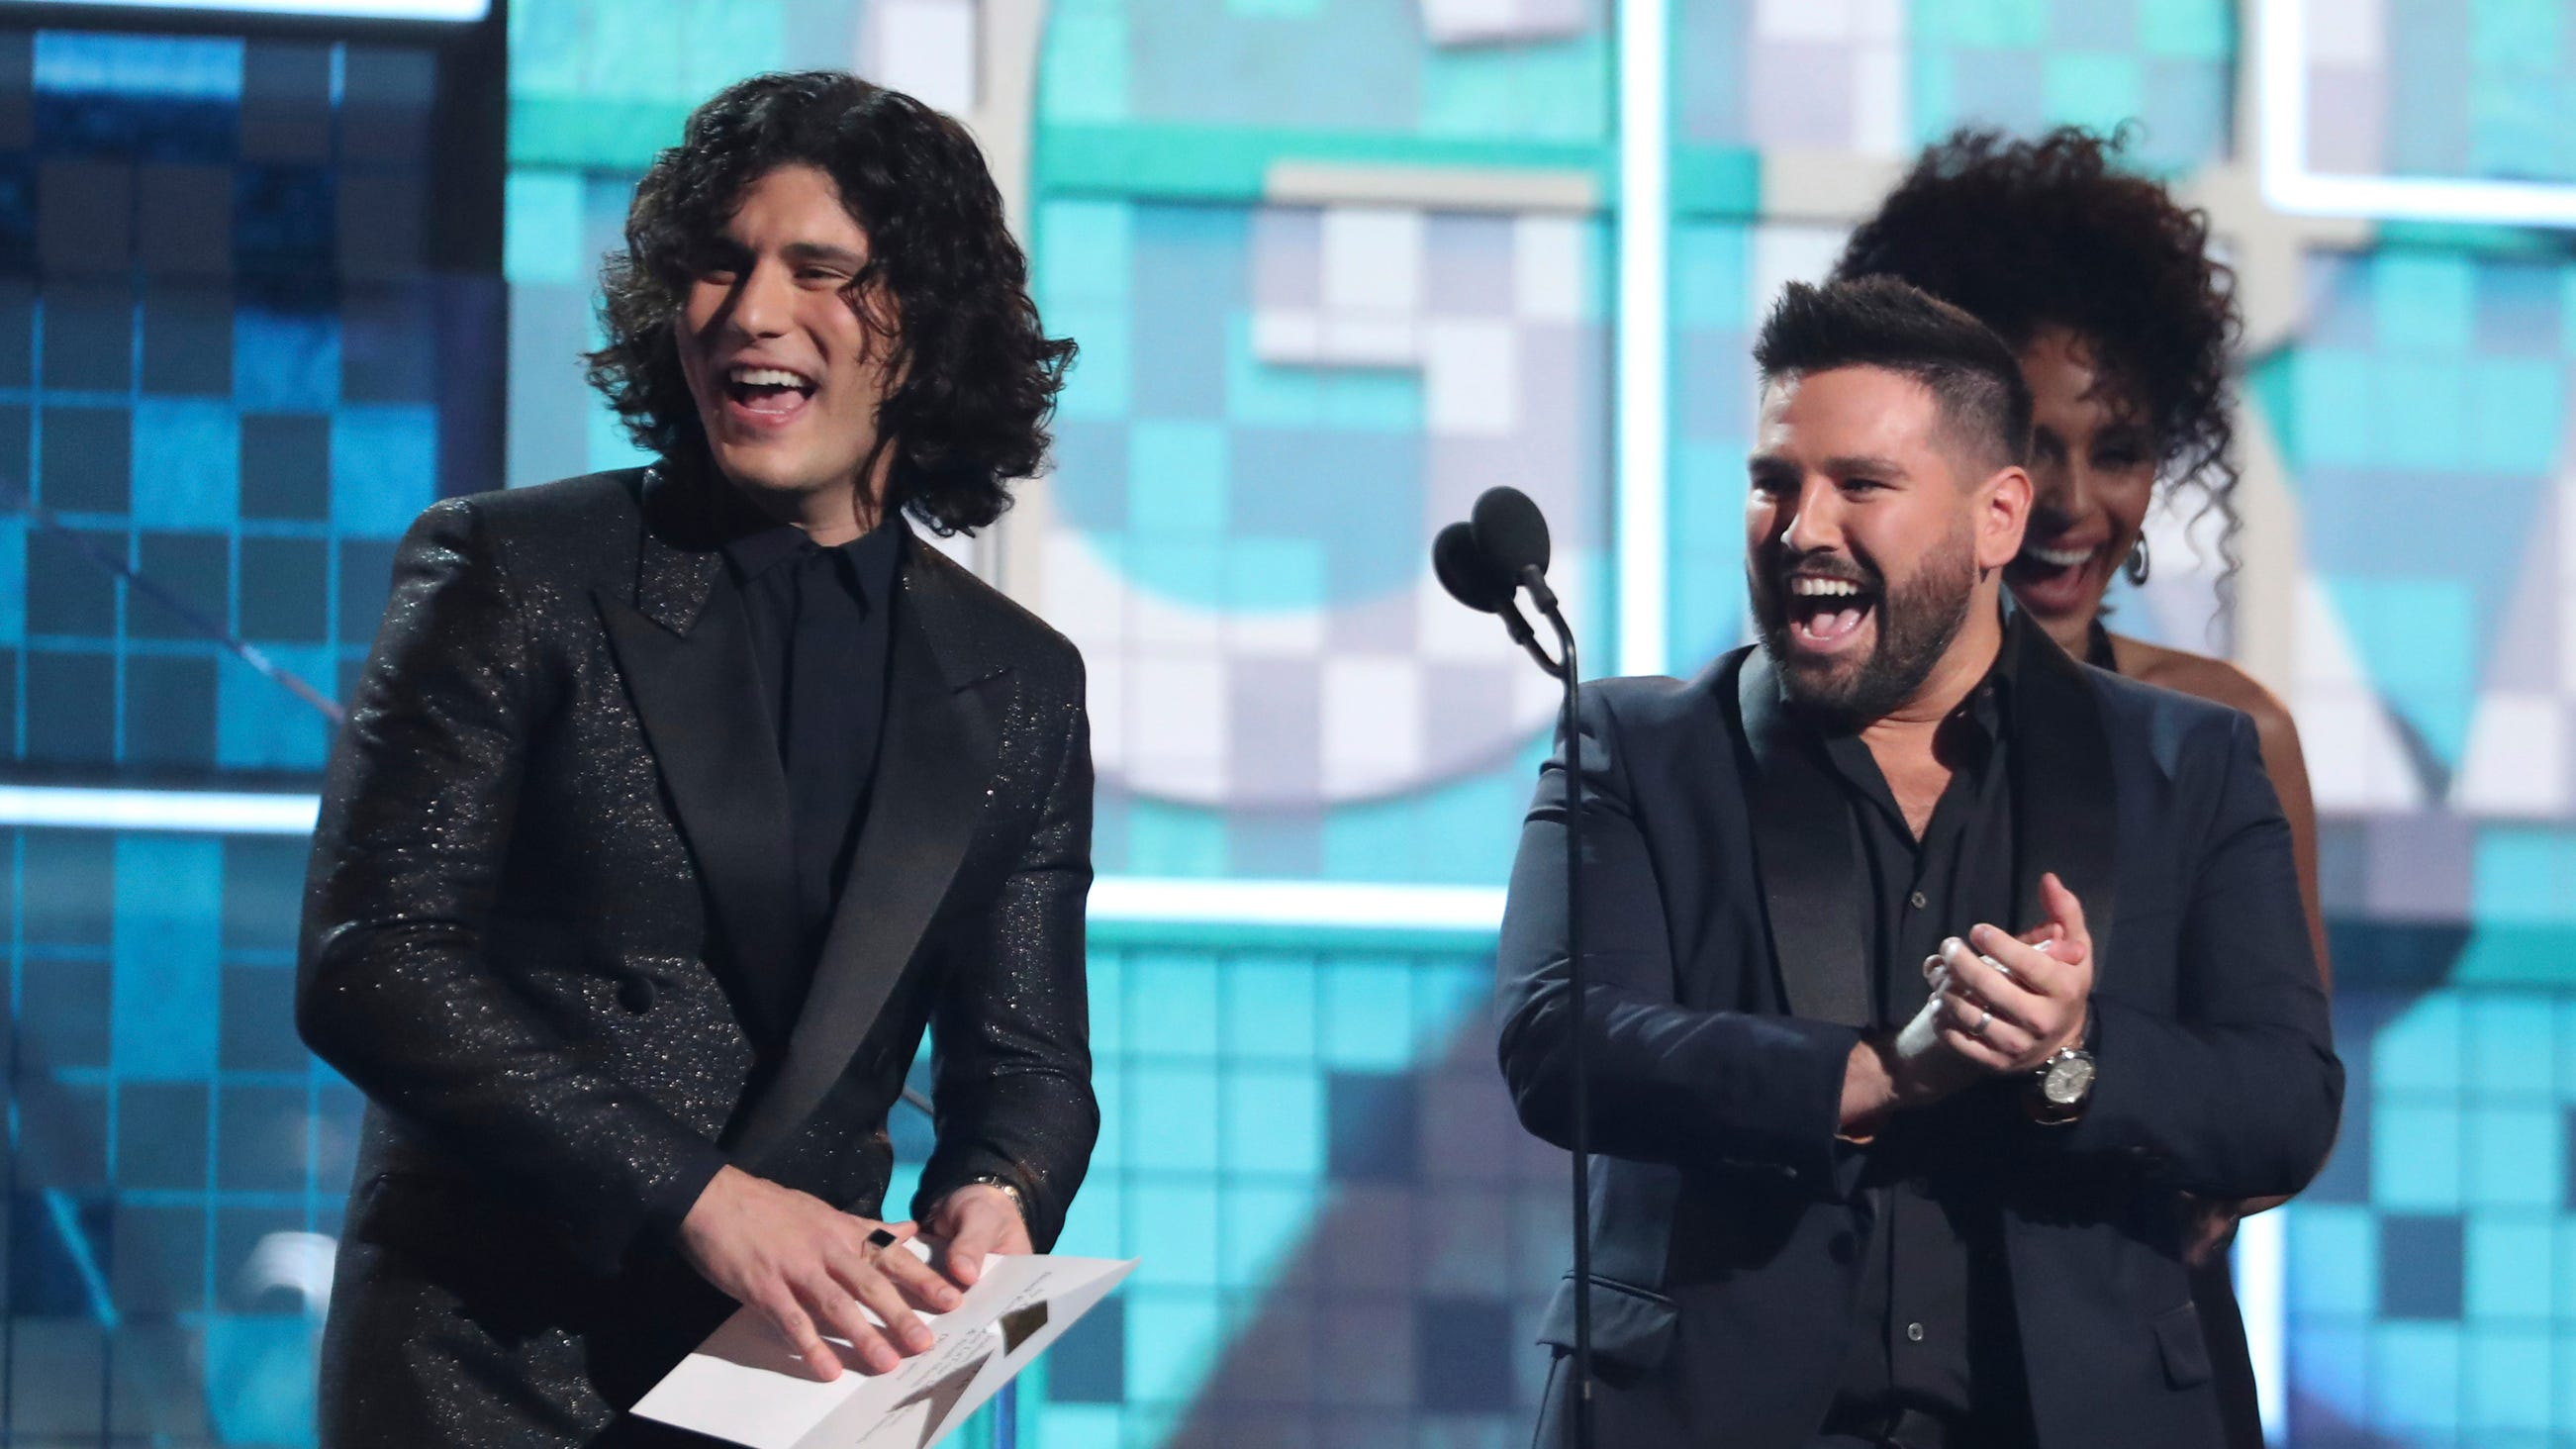 ACM Awards: Dan + Shay, Chris Stapleton and Kacey Musgraves rack up nominations